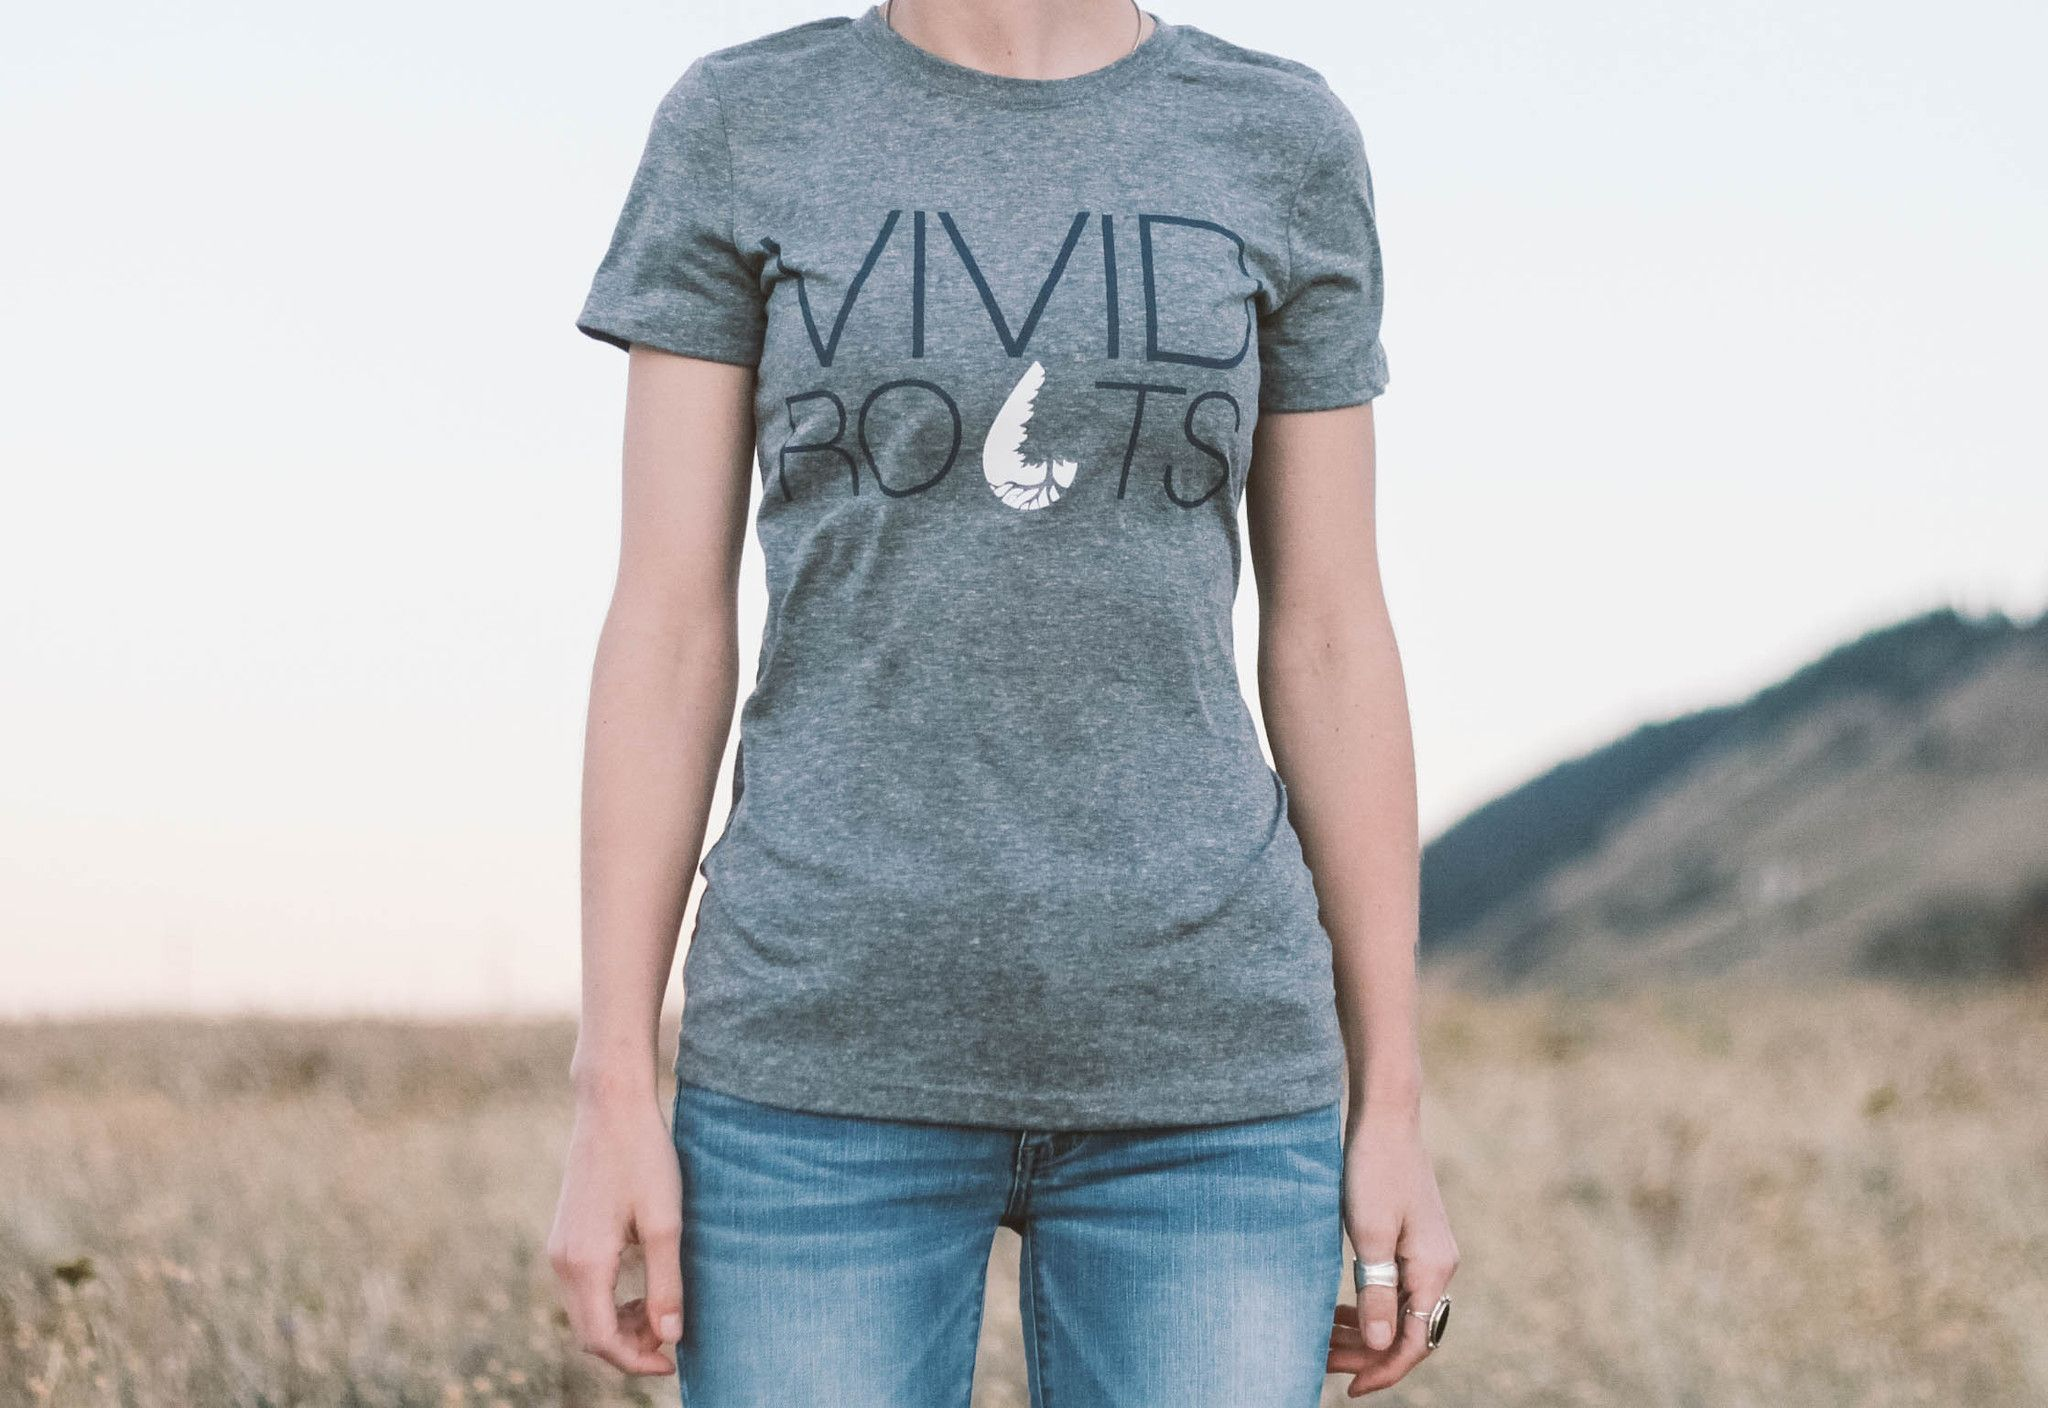 Women's Vivid Roots T-shirt - Heather Grey/Earth Tone Blue